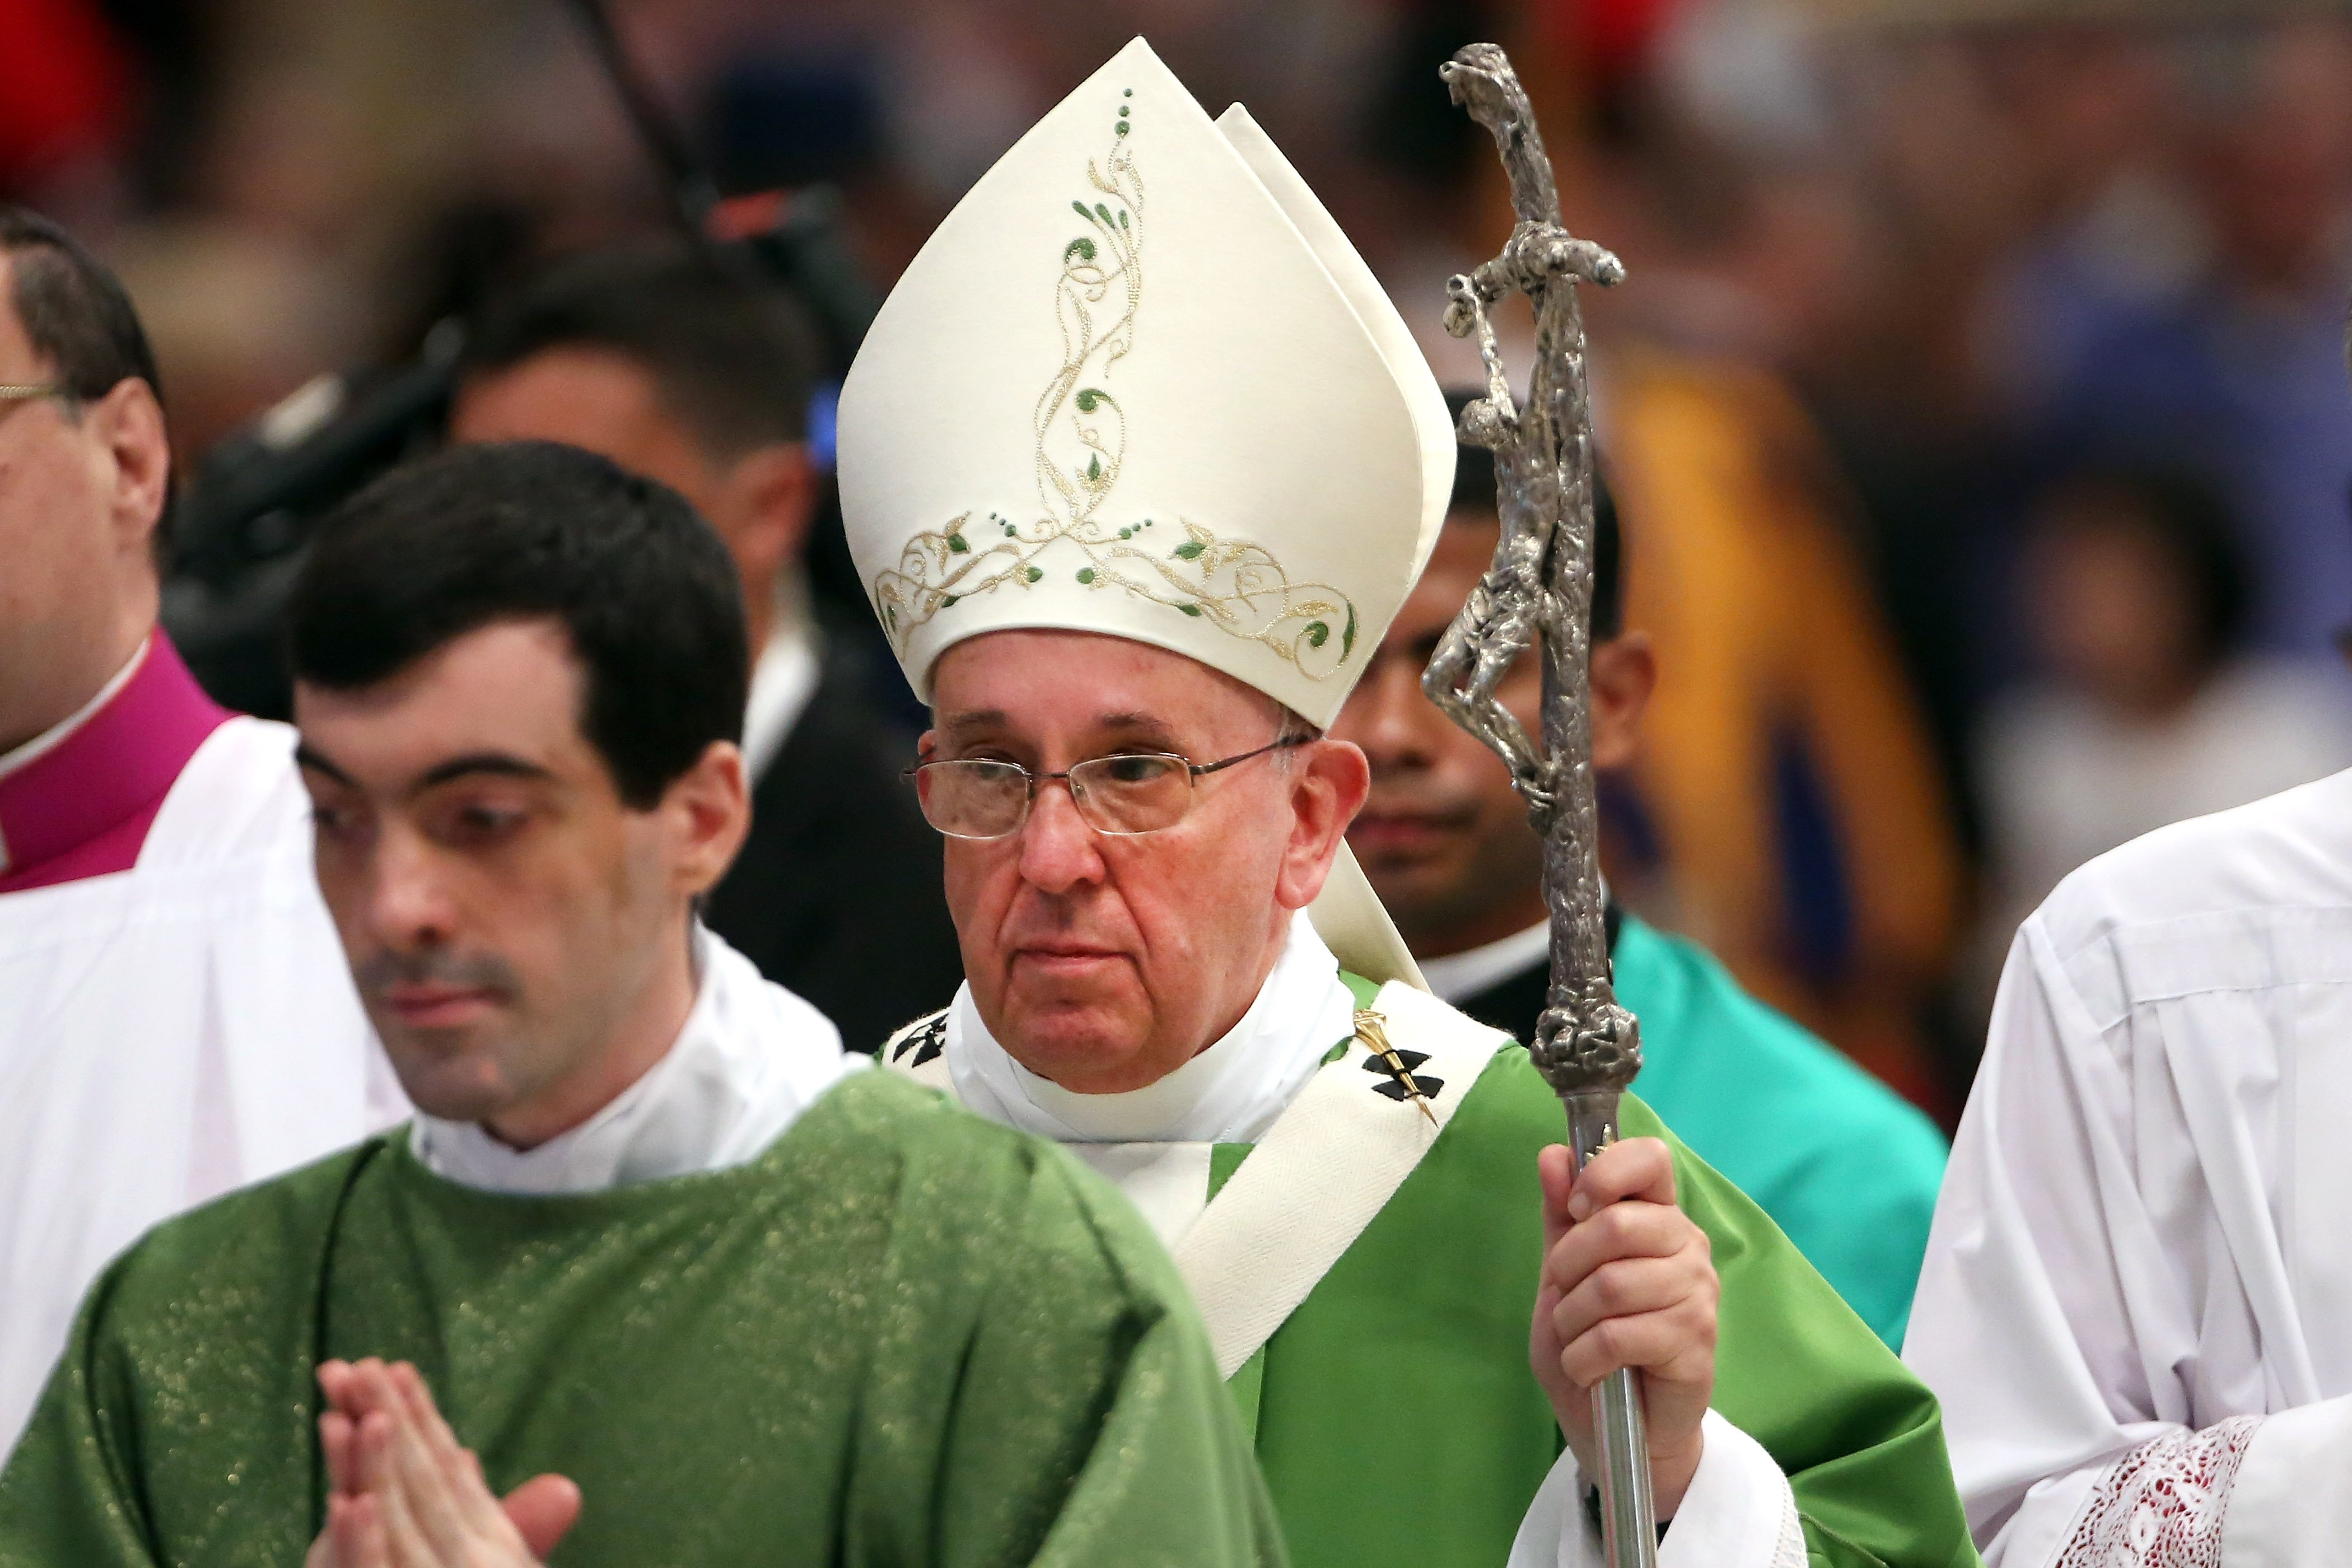 Pope Francis attends the Opening Mass of the Synod of Bishops in St. Peter's Basilica on Oct. 5, 2014 in Vatican City.